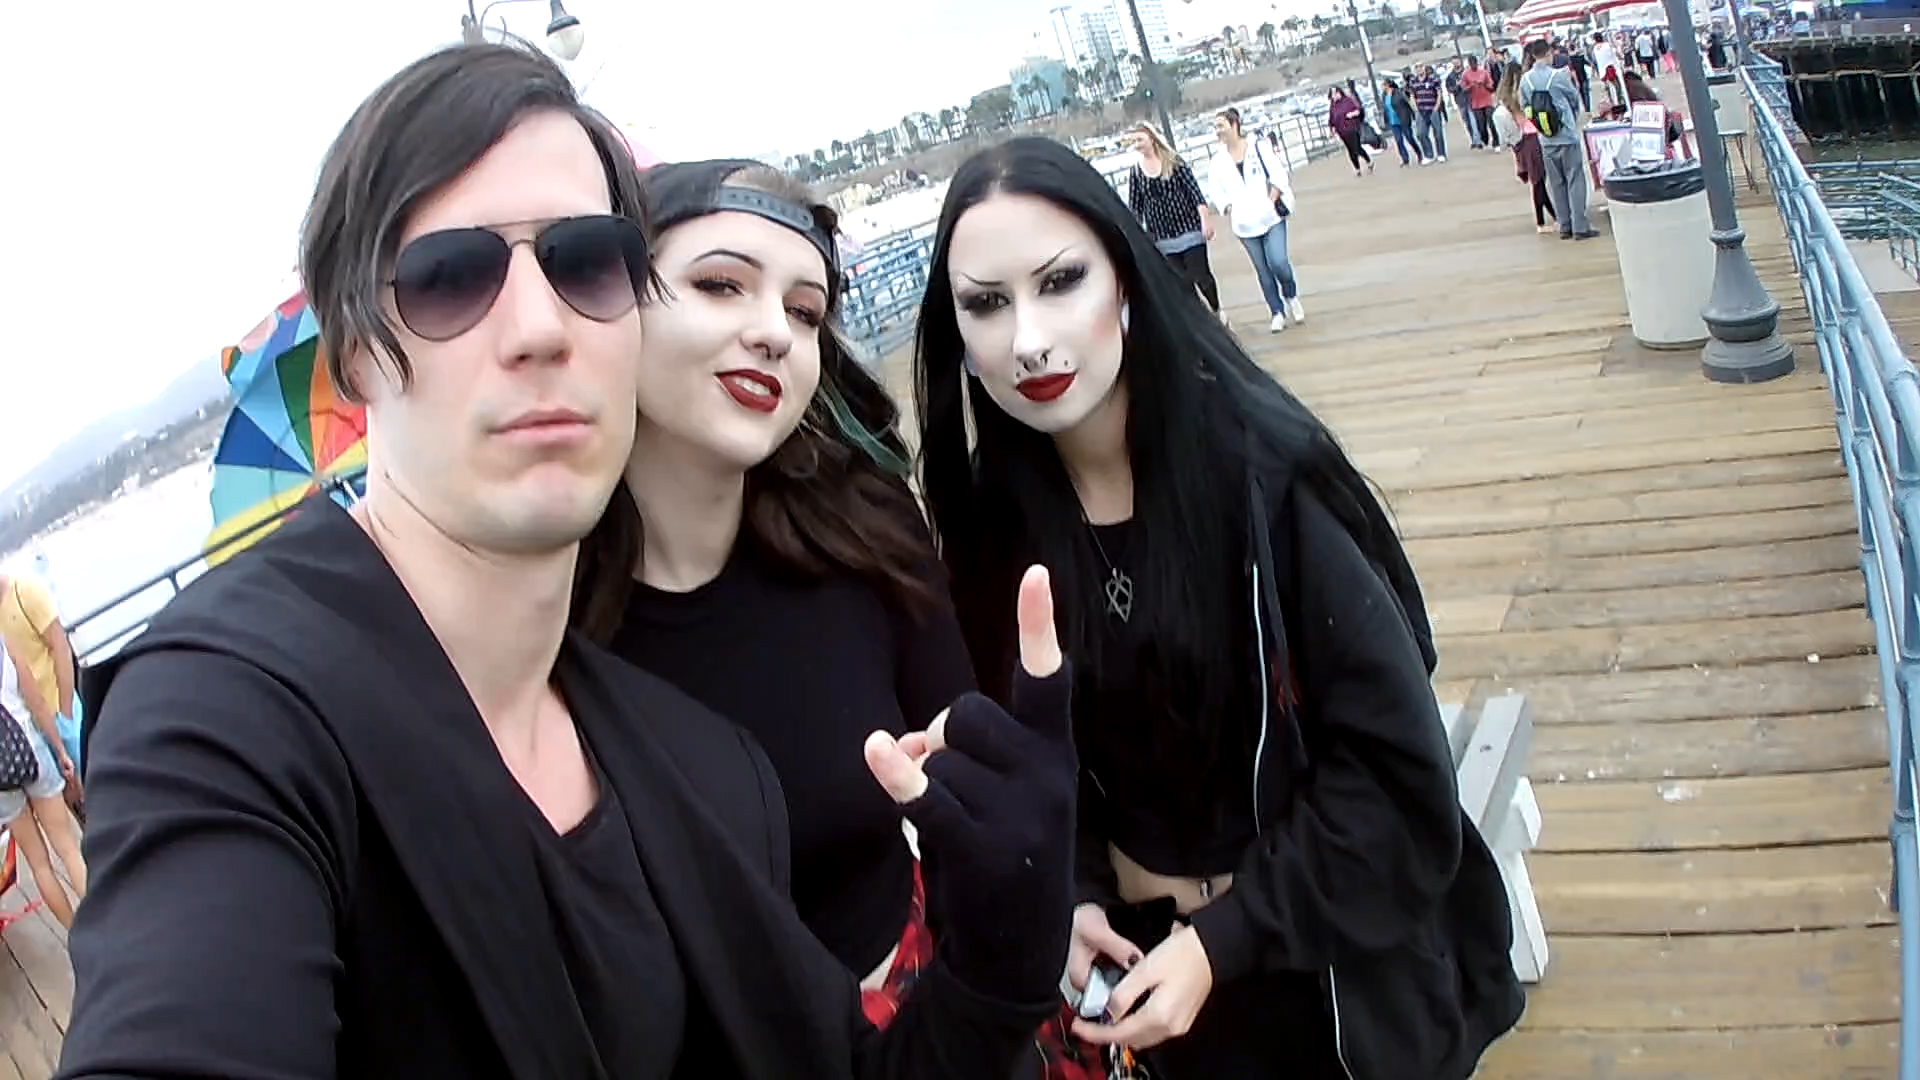 With adorable ladies - Santa Monica Pier - Los Angeles CA 2016